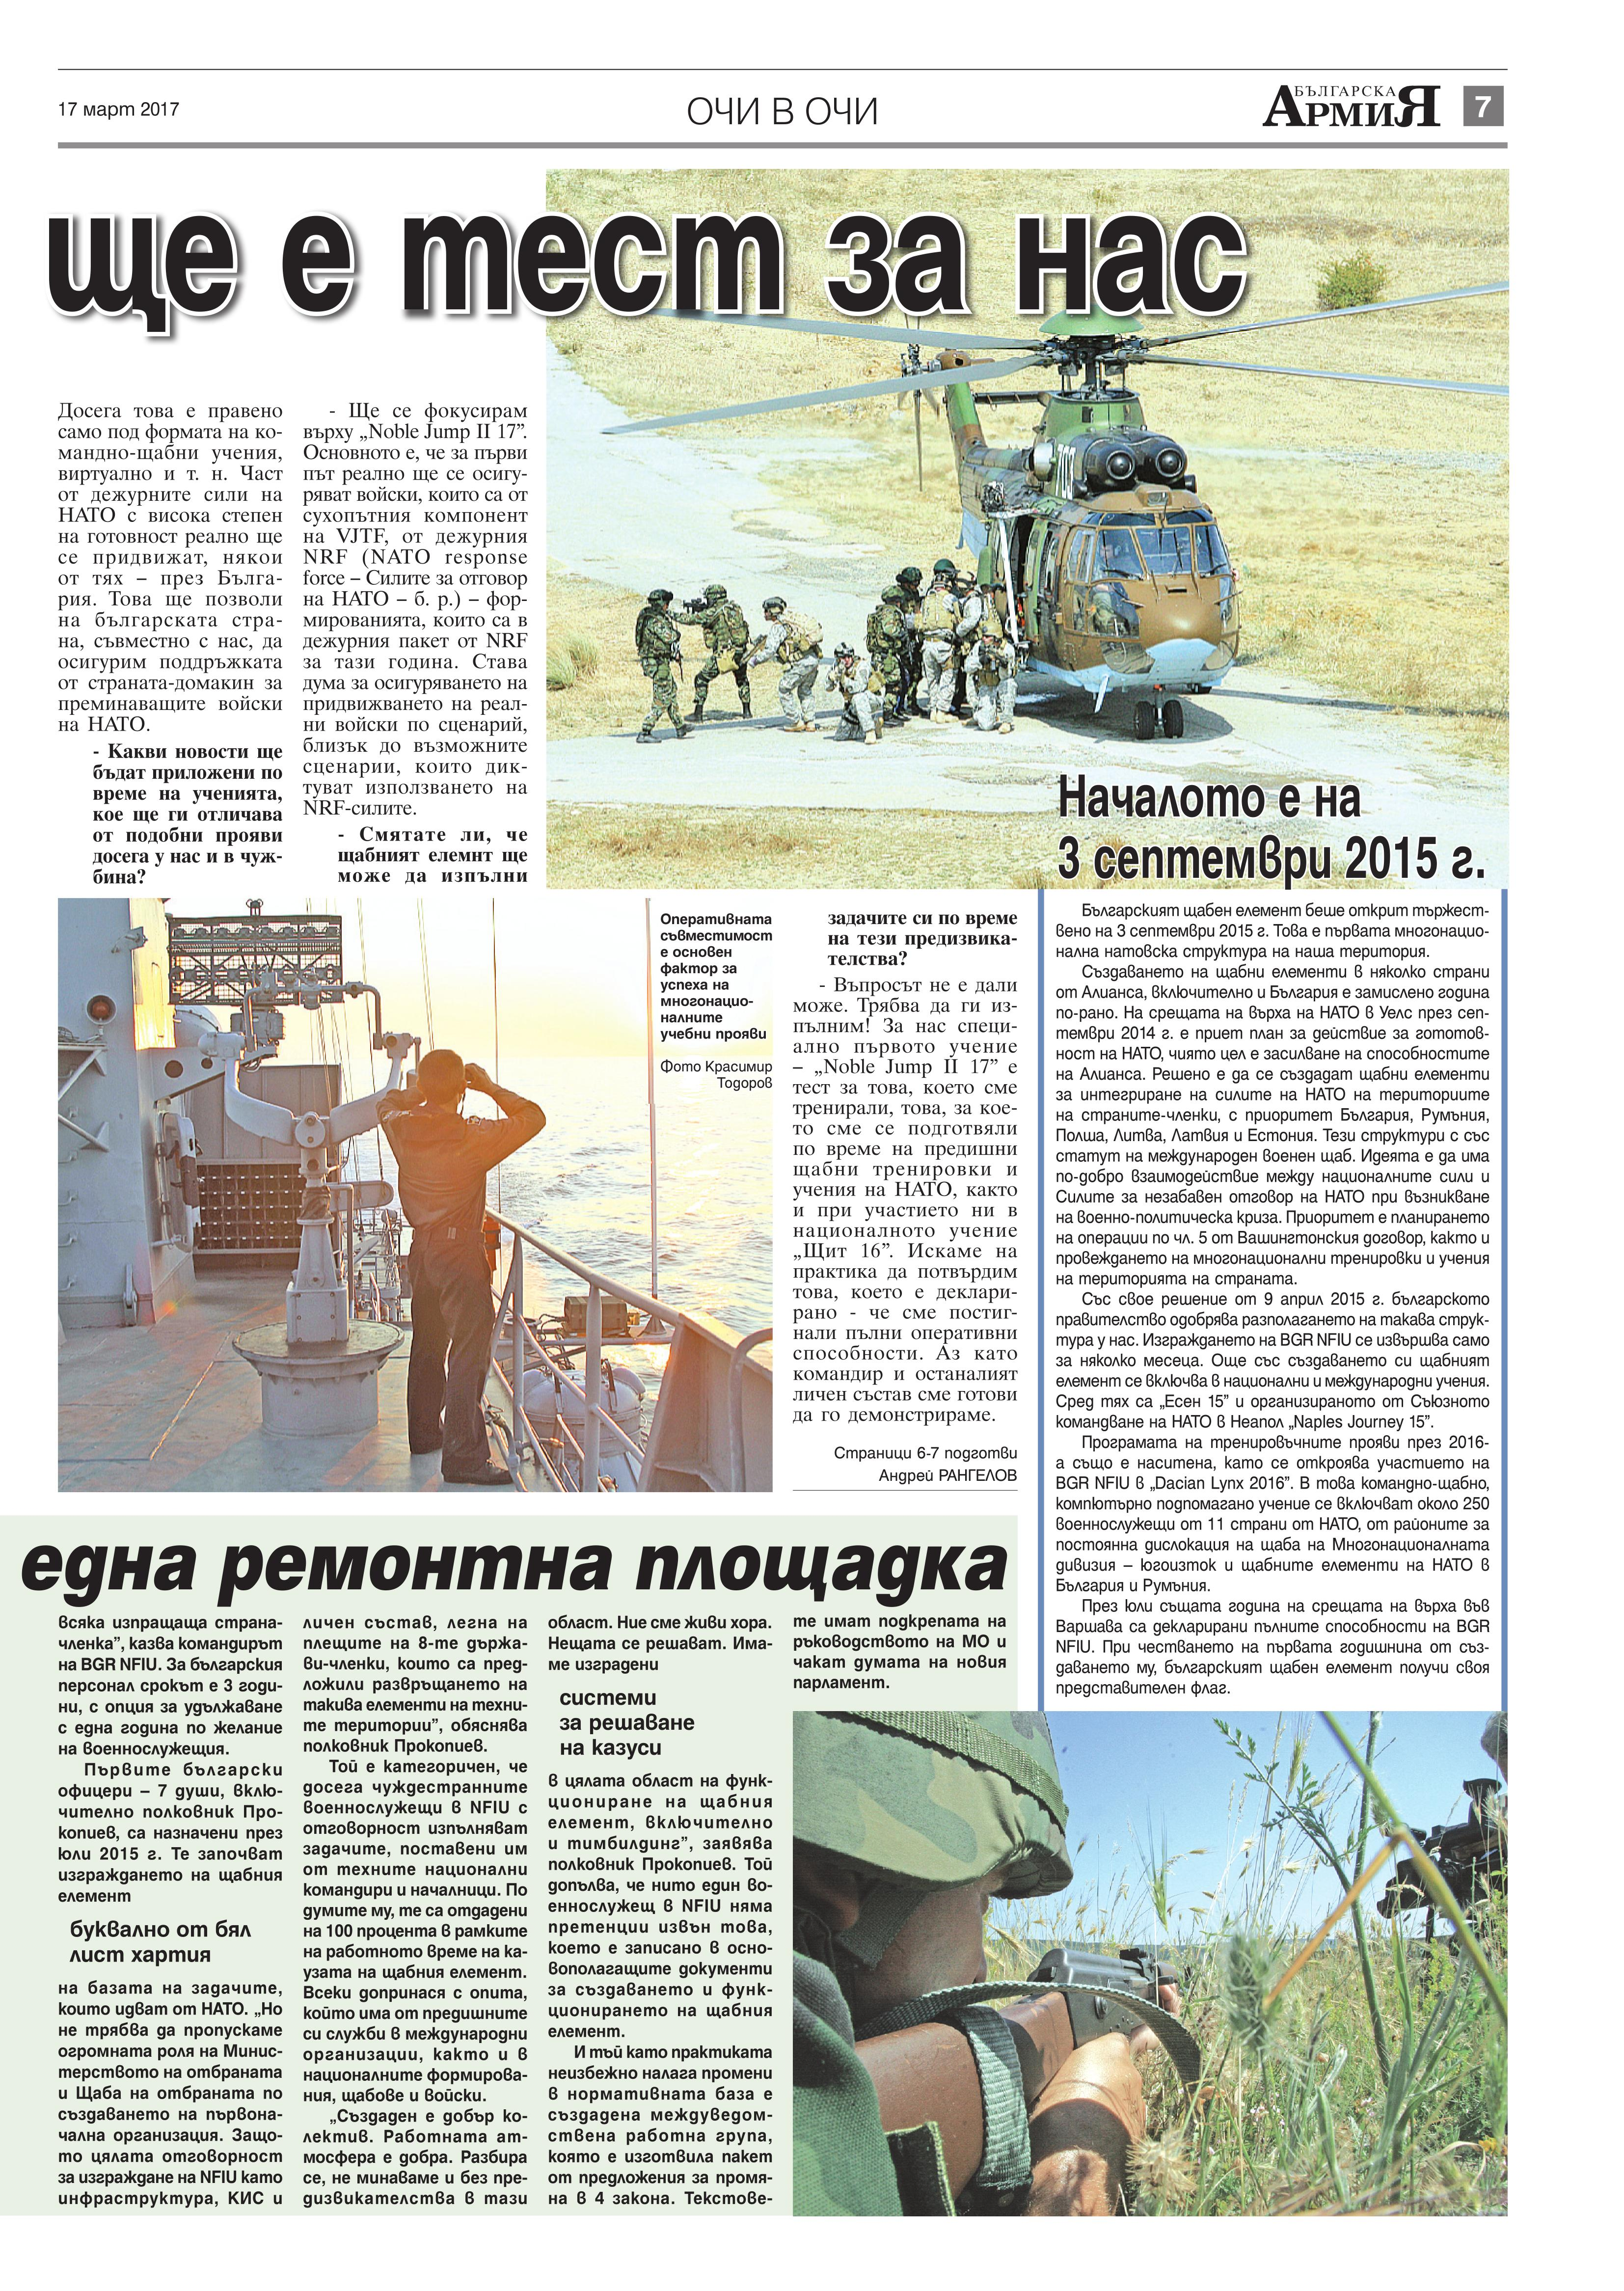 https://www.armymedia.bg/wp-content/uploads/2015/06/07.page1_-17.jpg